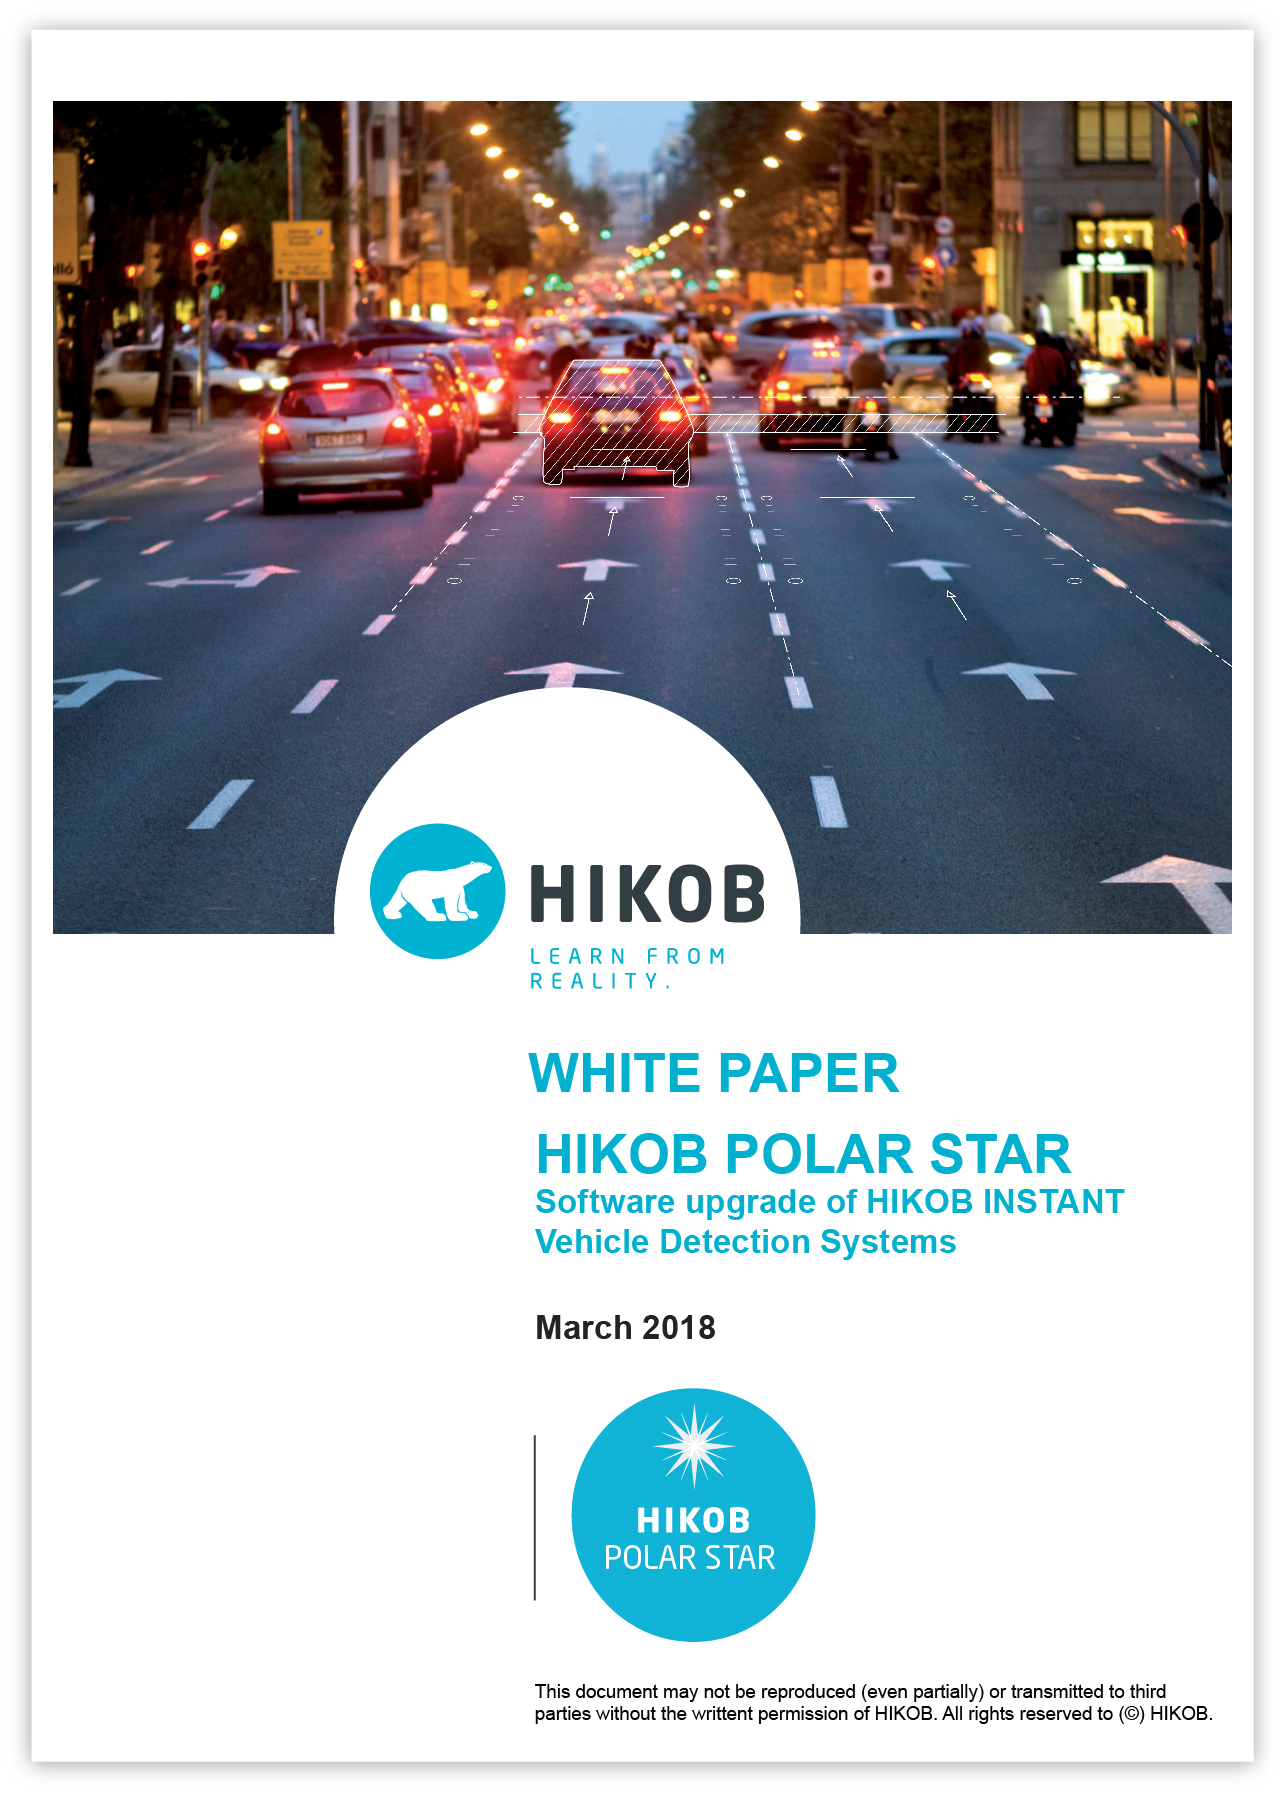 https://www.hikob.com/wp-content/uploads/2018/04/white_paper_couverture_EN-1.jpg